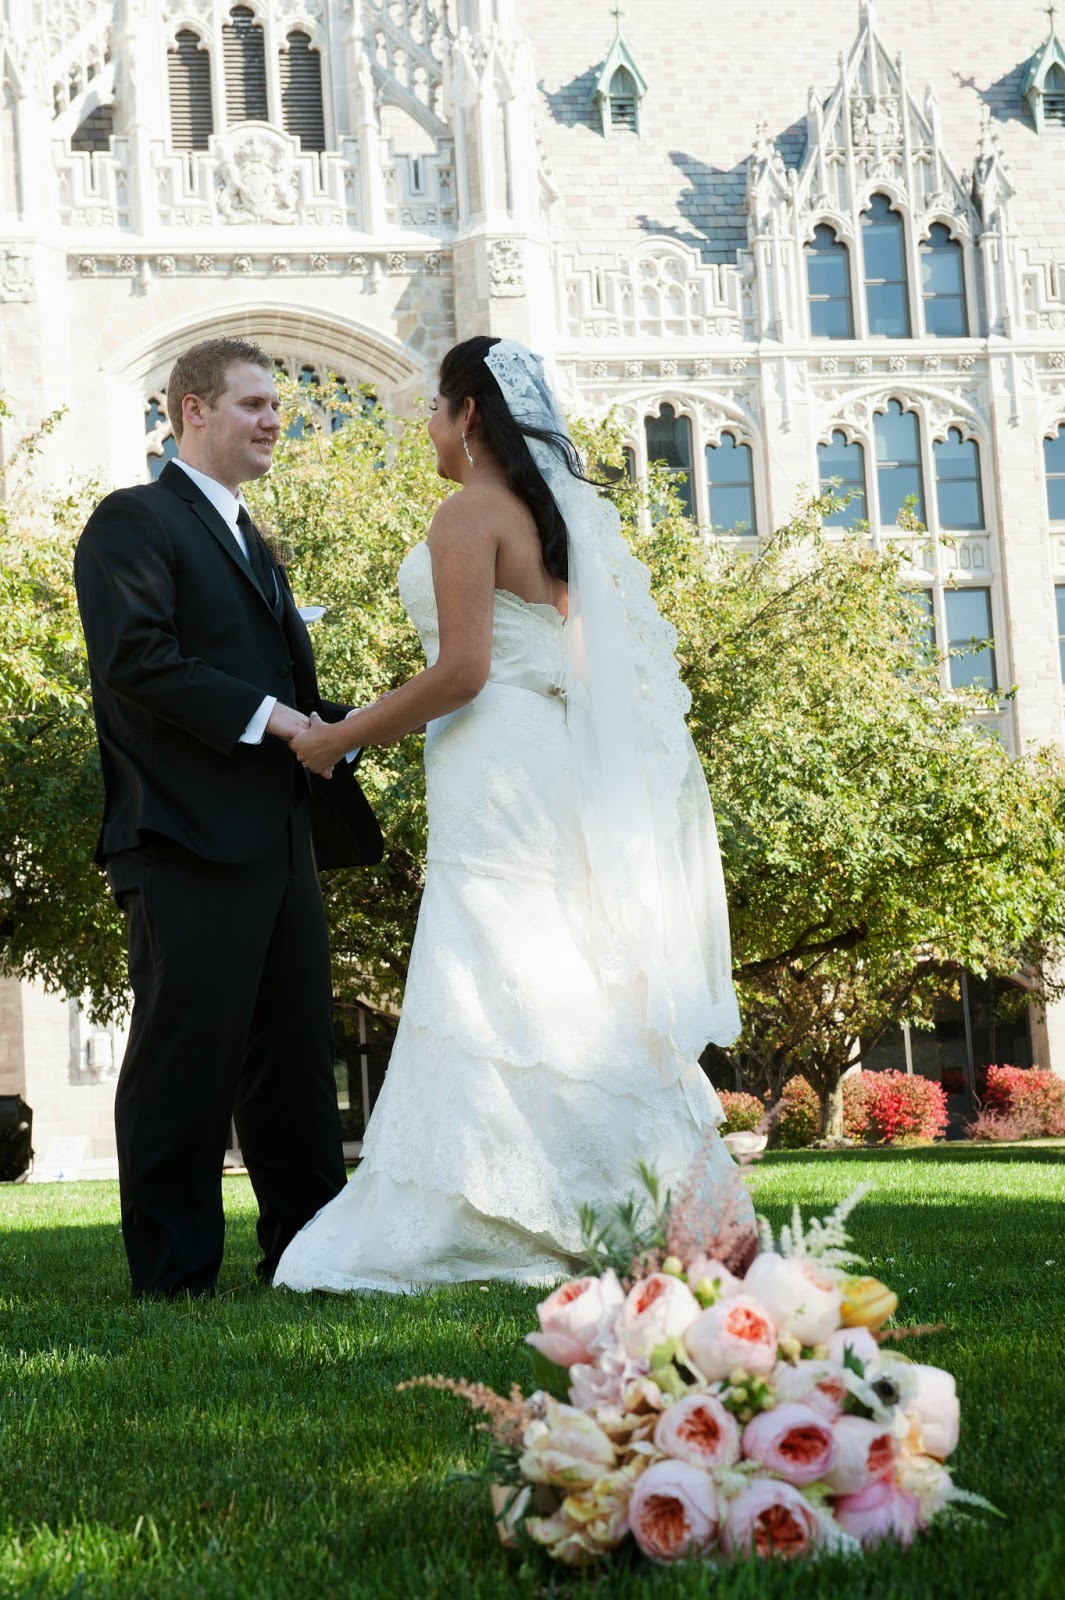 Sixty State Place Wedding - Pink Bride Bouquet - Downtown Albany NY Wedding - Old Historical Bank Wedding - Historical Venue Wedding - Upstate NY - Splendid Stems Floral Designs